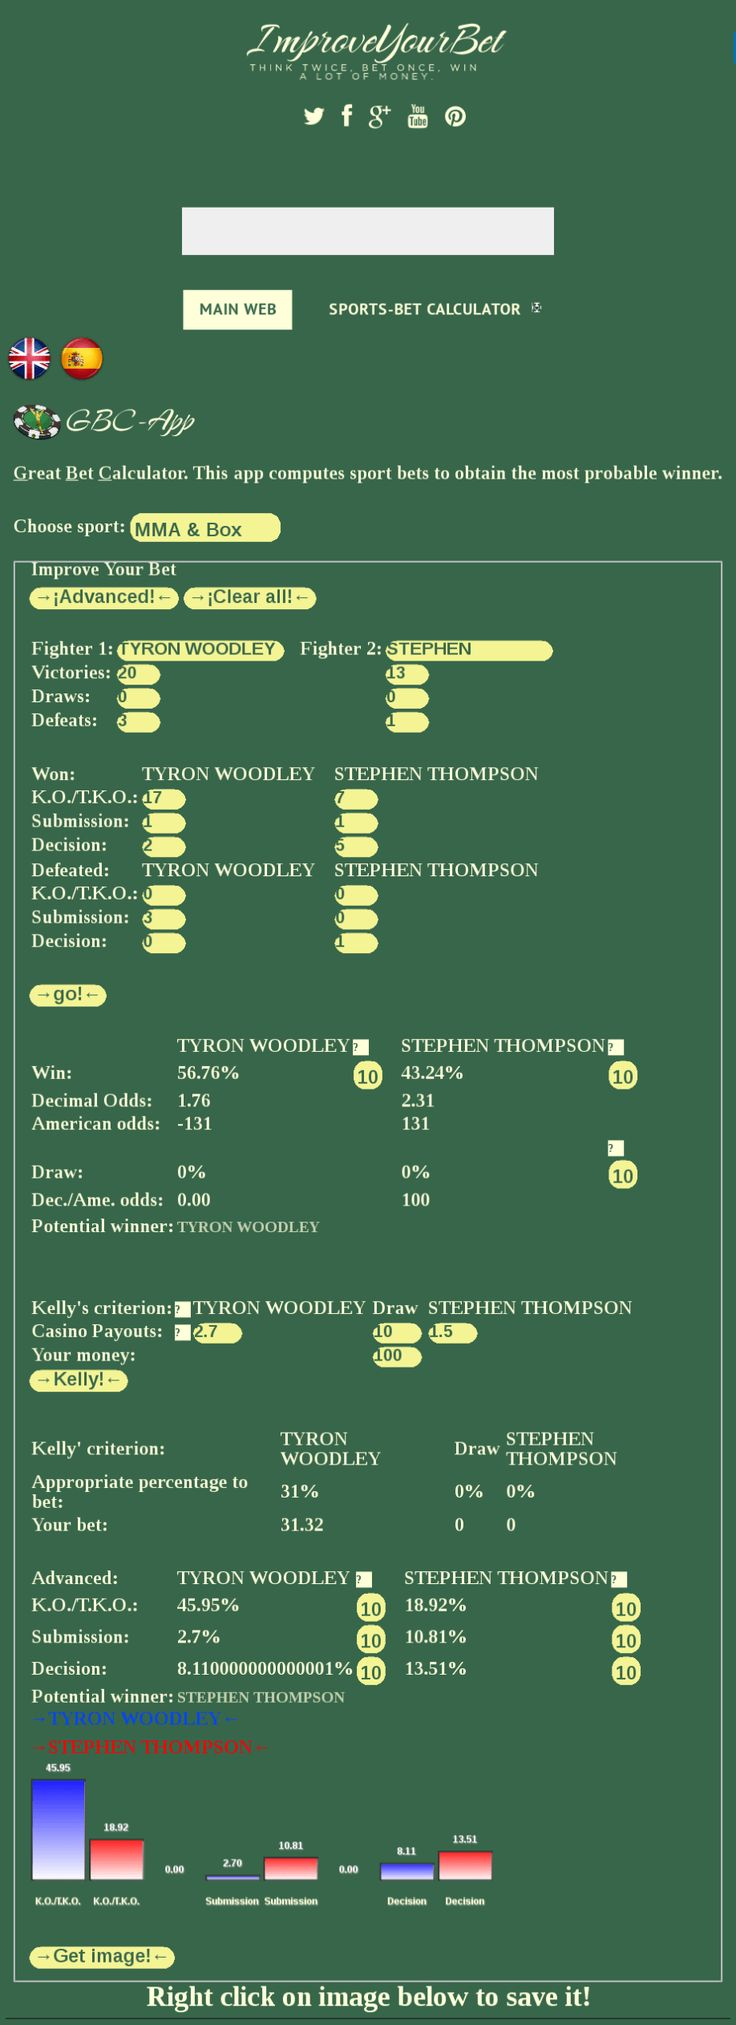 ufc-205-forecast-and-predictions-tyron-woodley-vs-stephen-thompson